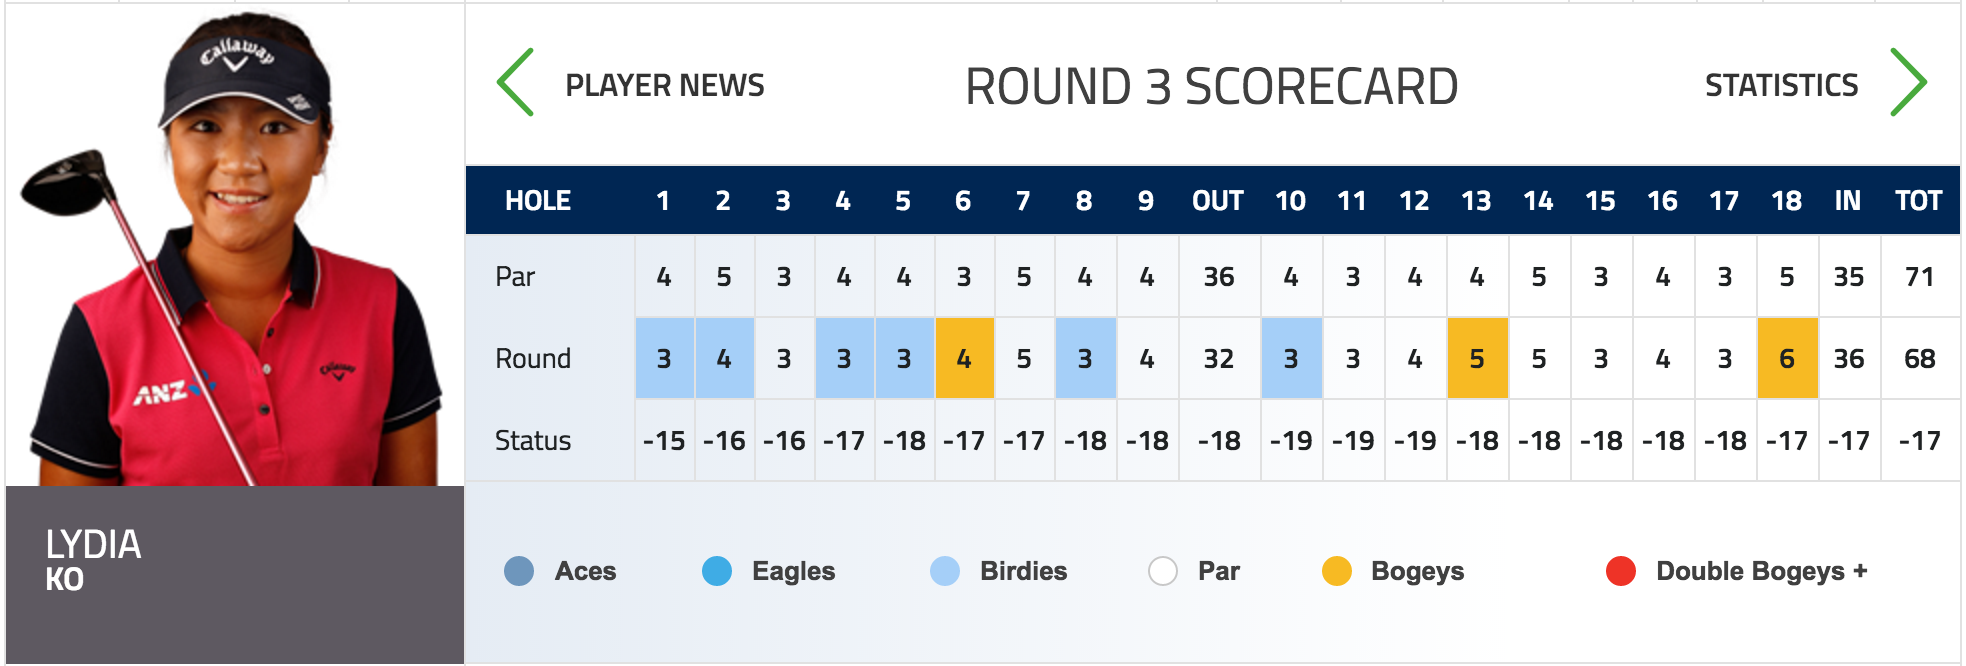 How to get my win number from walmart - Ko Entered The Final Round In A Share Of The Lead With Morgan Pressel At 14 Under Par And Two Strokes Ahead Of The Field Ko Got Off To A Quick Start